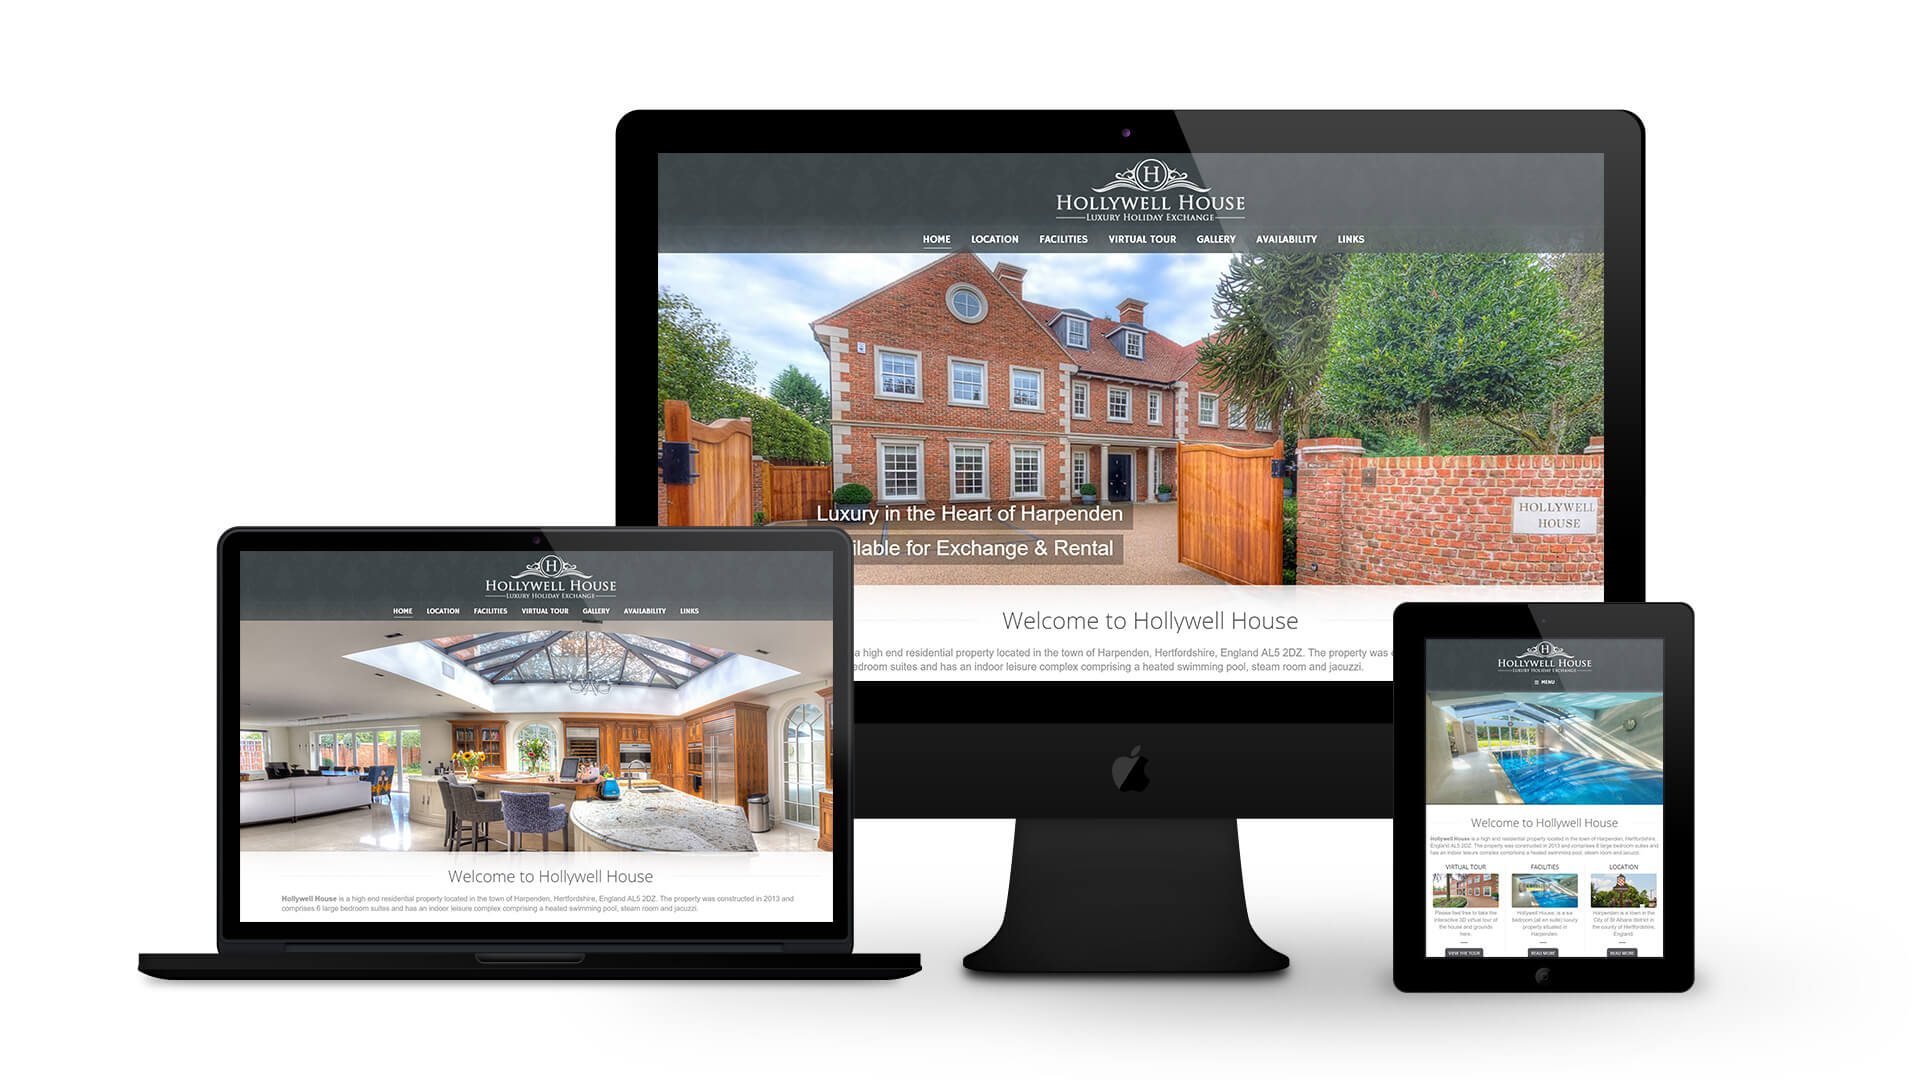 Hollywell House - By Ice Cube Web Design